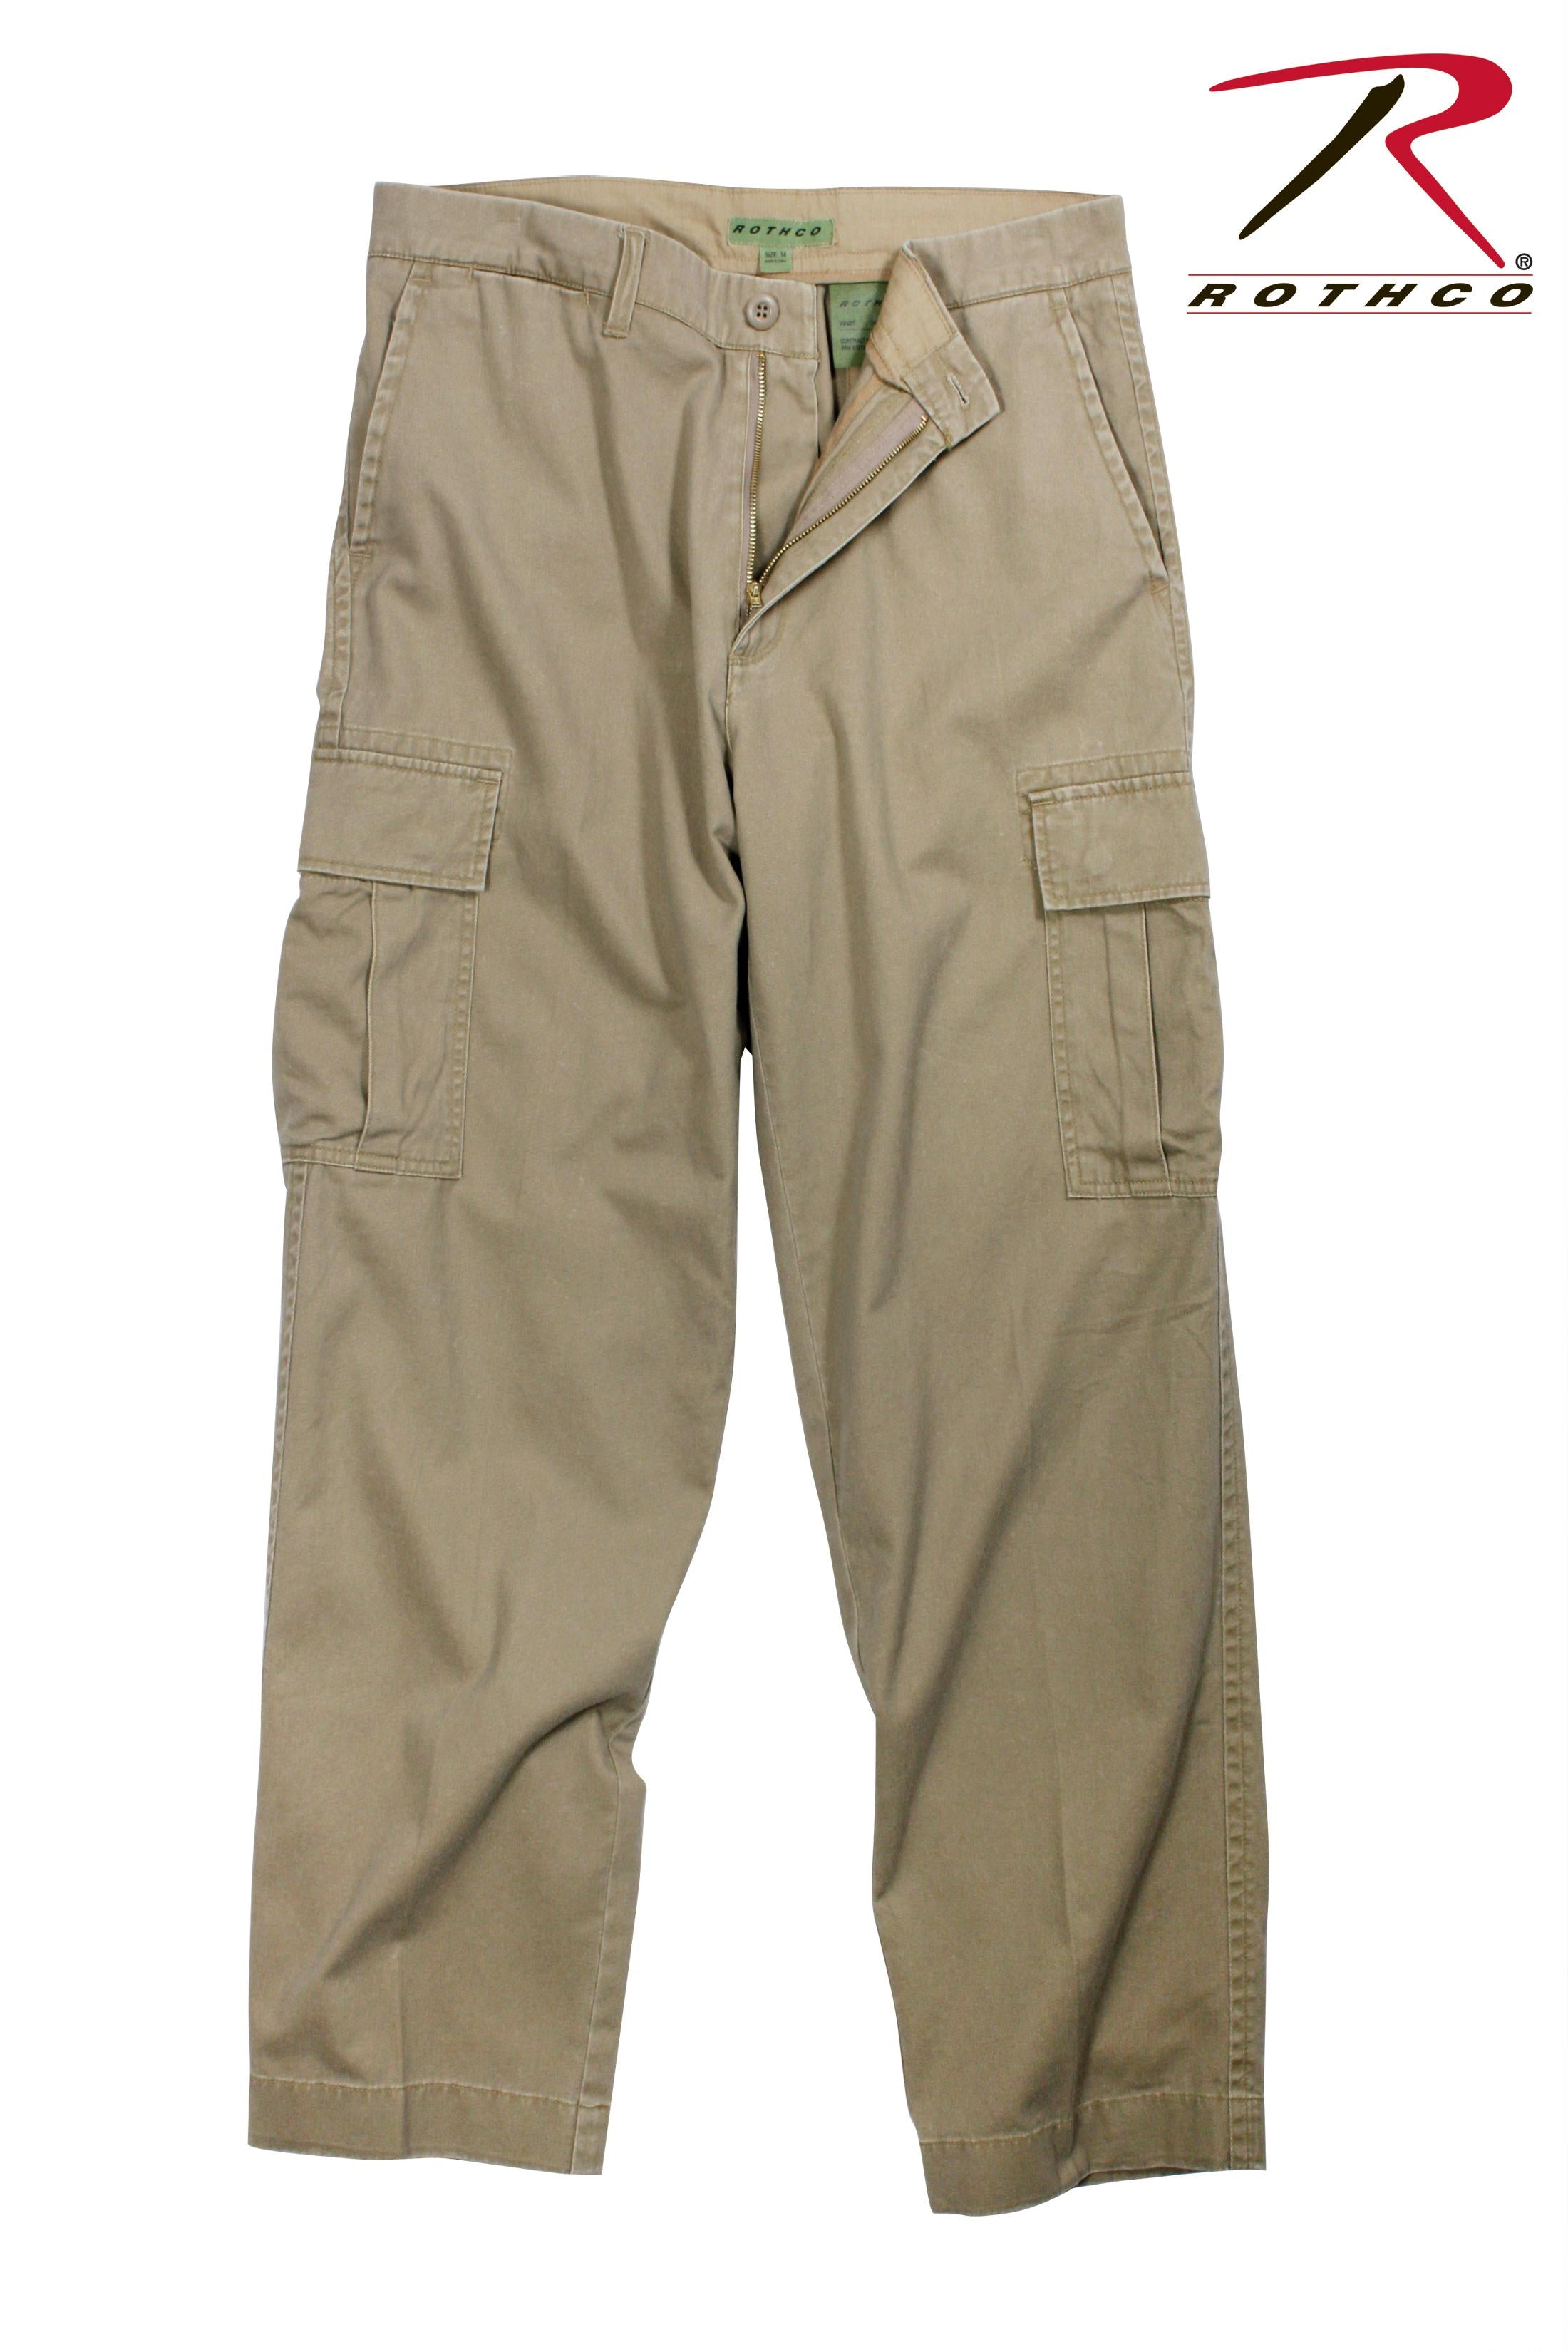 Rothco Vintage 6-Pocket Flat Front Fatigue Pants - Khaki / 38